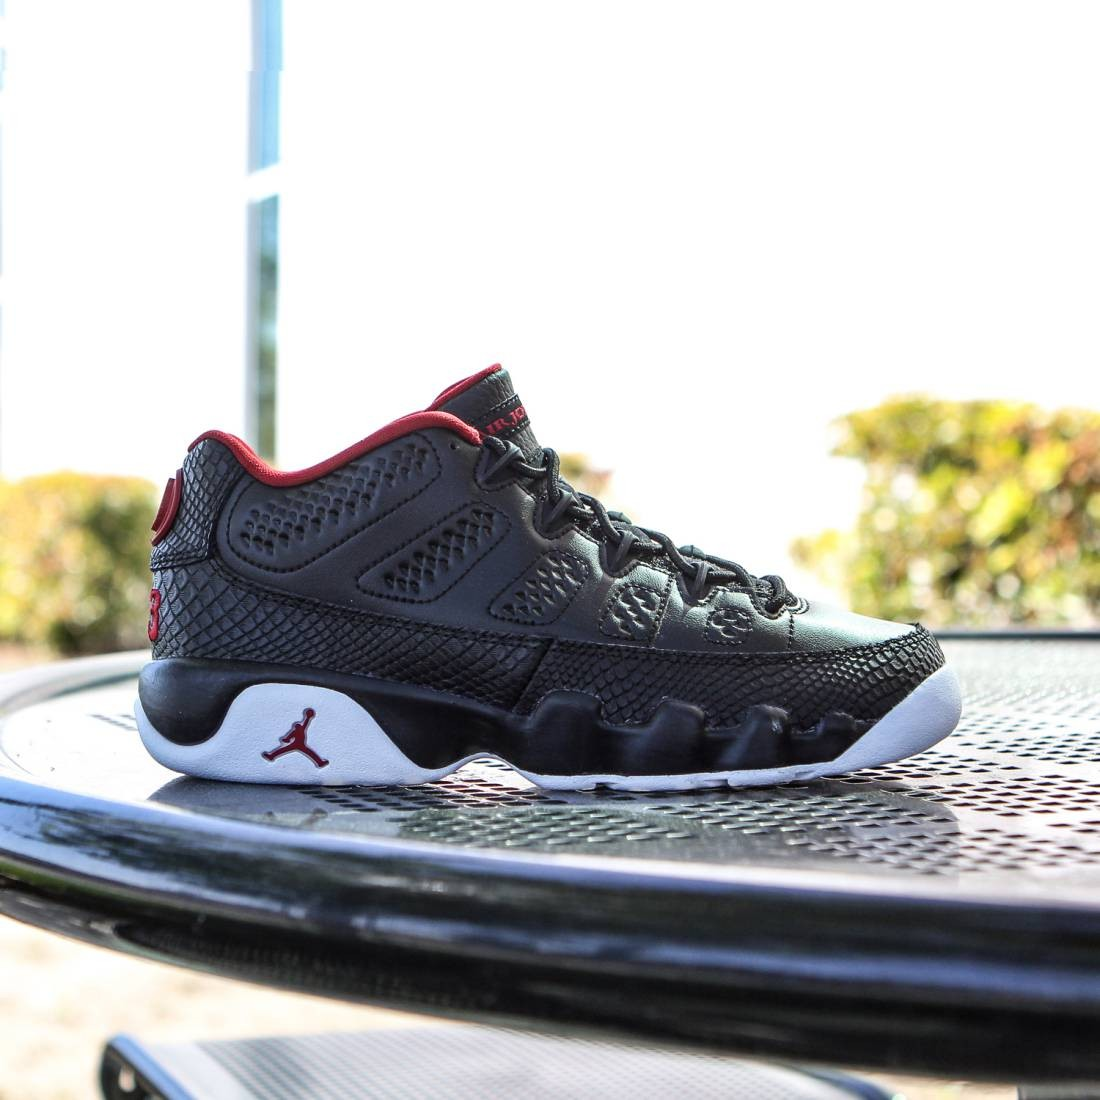 sports shoes 7d0f4 cffb4 Air Jordan 9 Retro Low (GS) Big Kids (black / white / gym red)